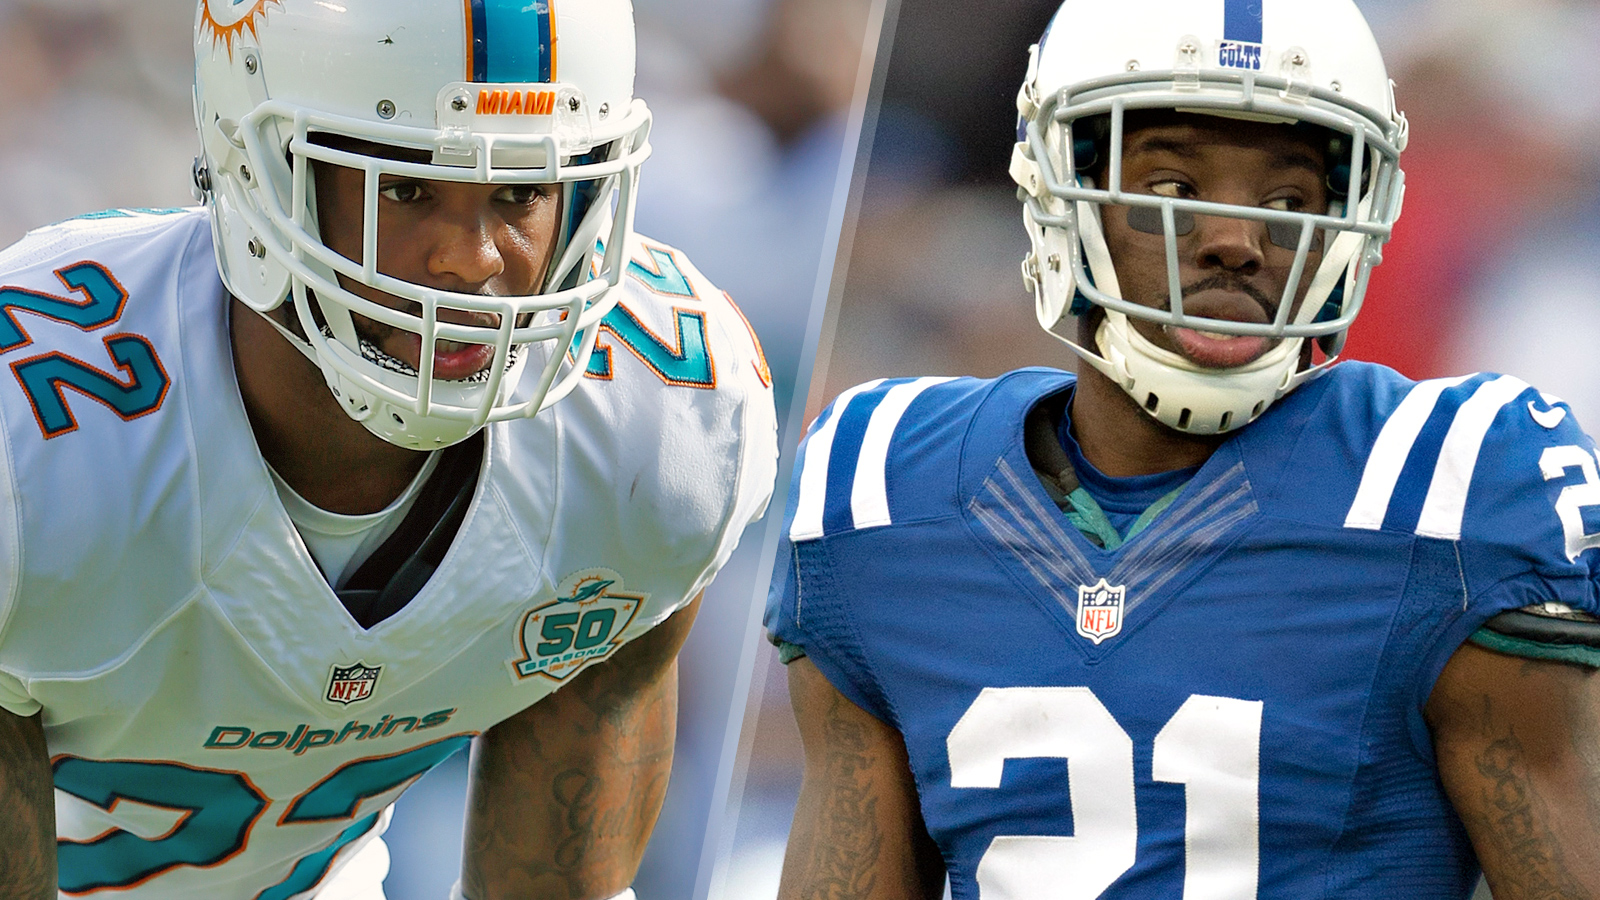 Trade review: Dolphins probably regret trading Vontae Davis to Colts